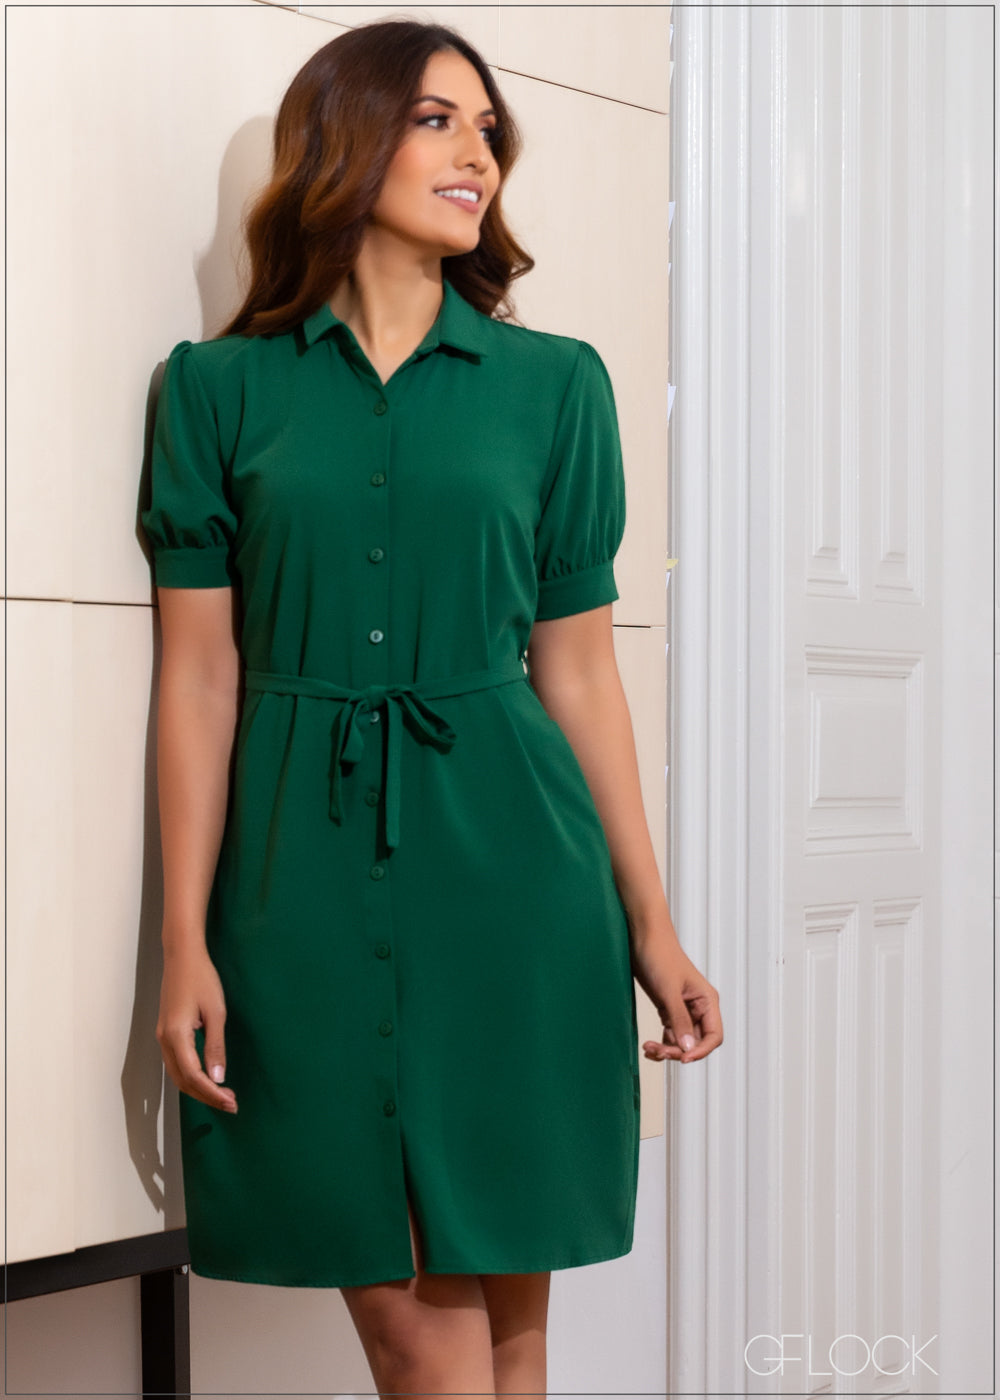 Dress with Short Puff Sleeves - WW 2611